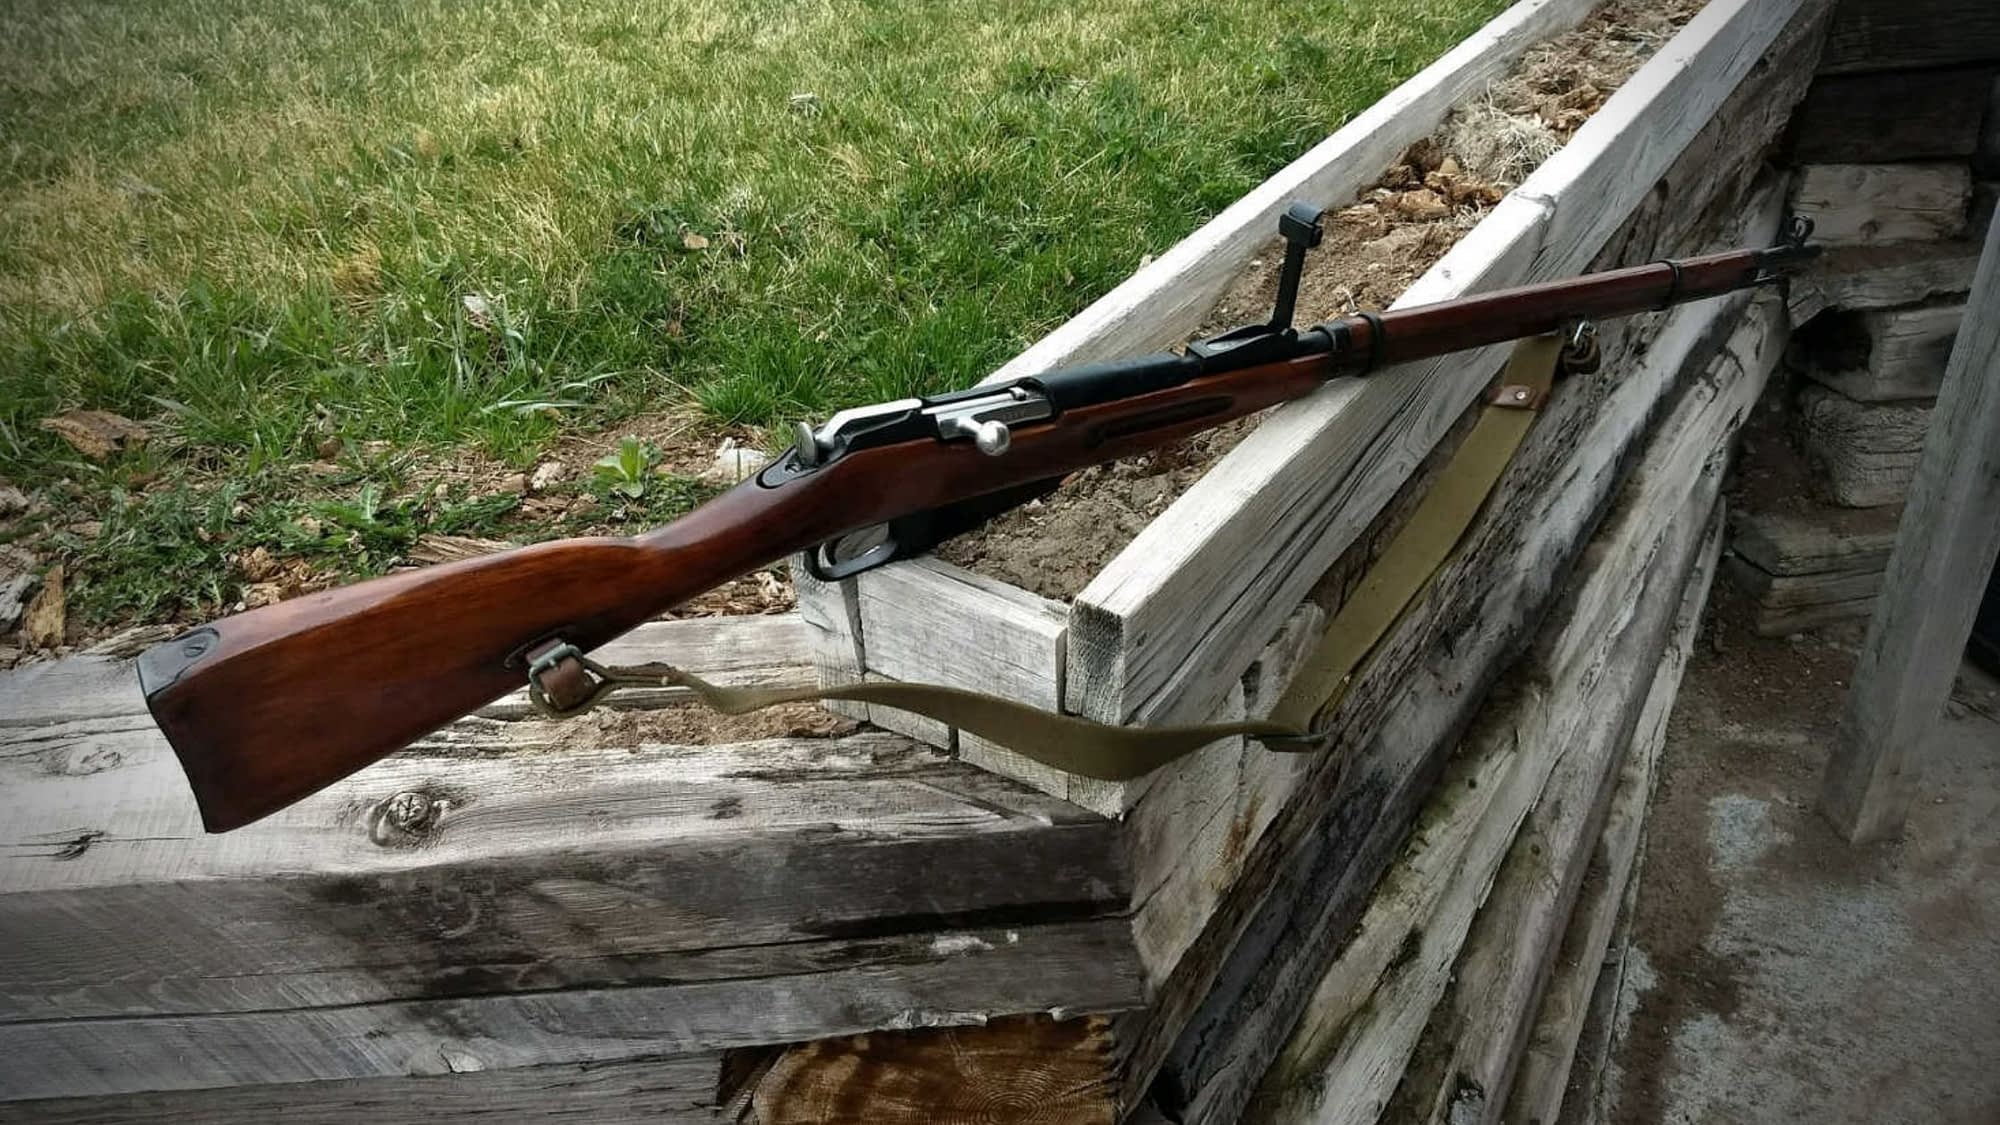 Can You Hunt With a Mosin Nagant?